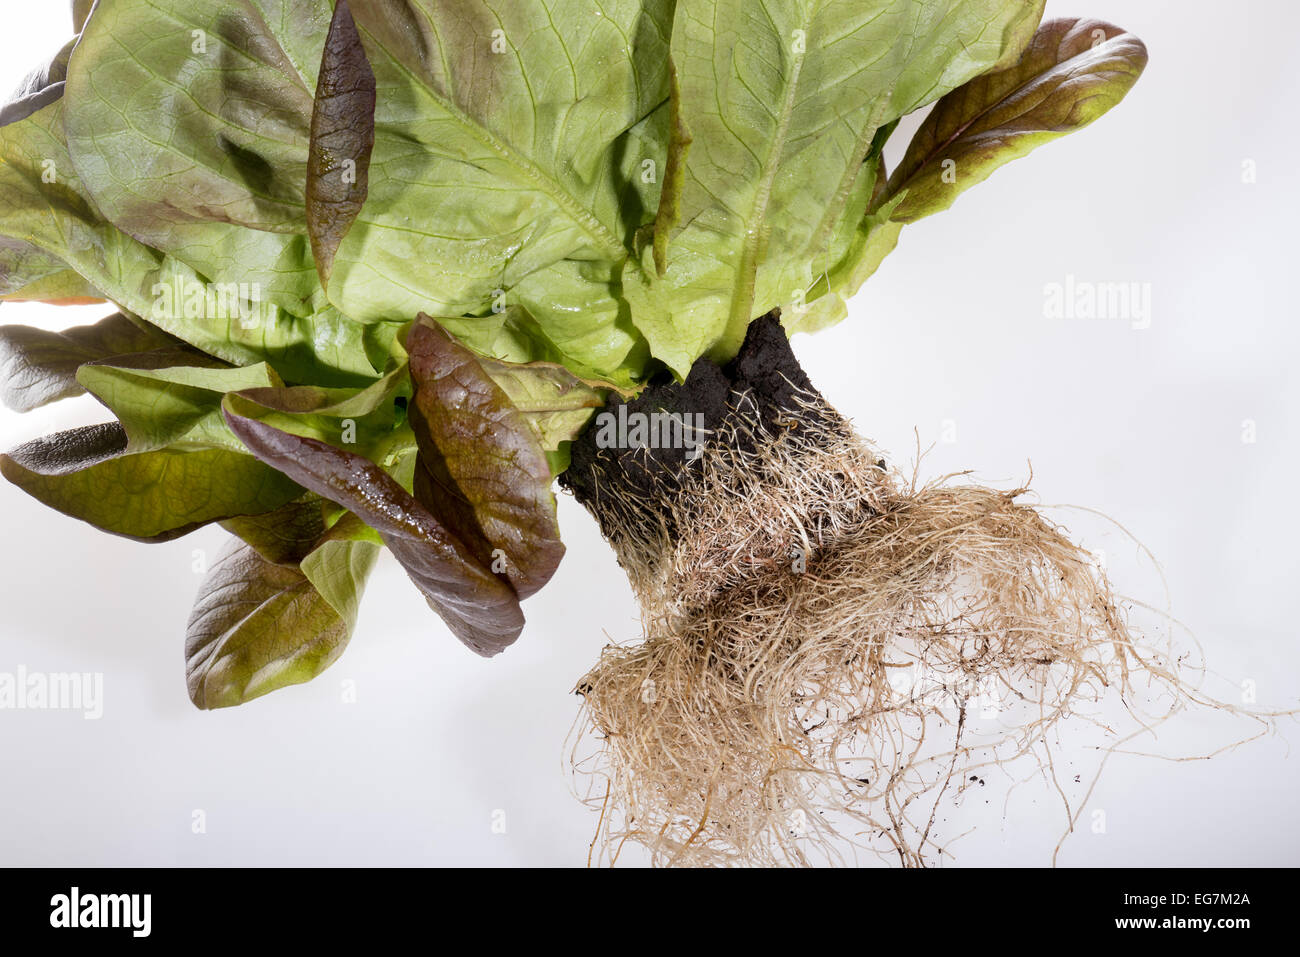 Salanova lettuce leaf salad sala nova fresh green health healthy sale with root bale with new breeding roots with - Stock Image